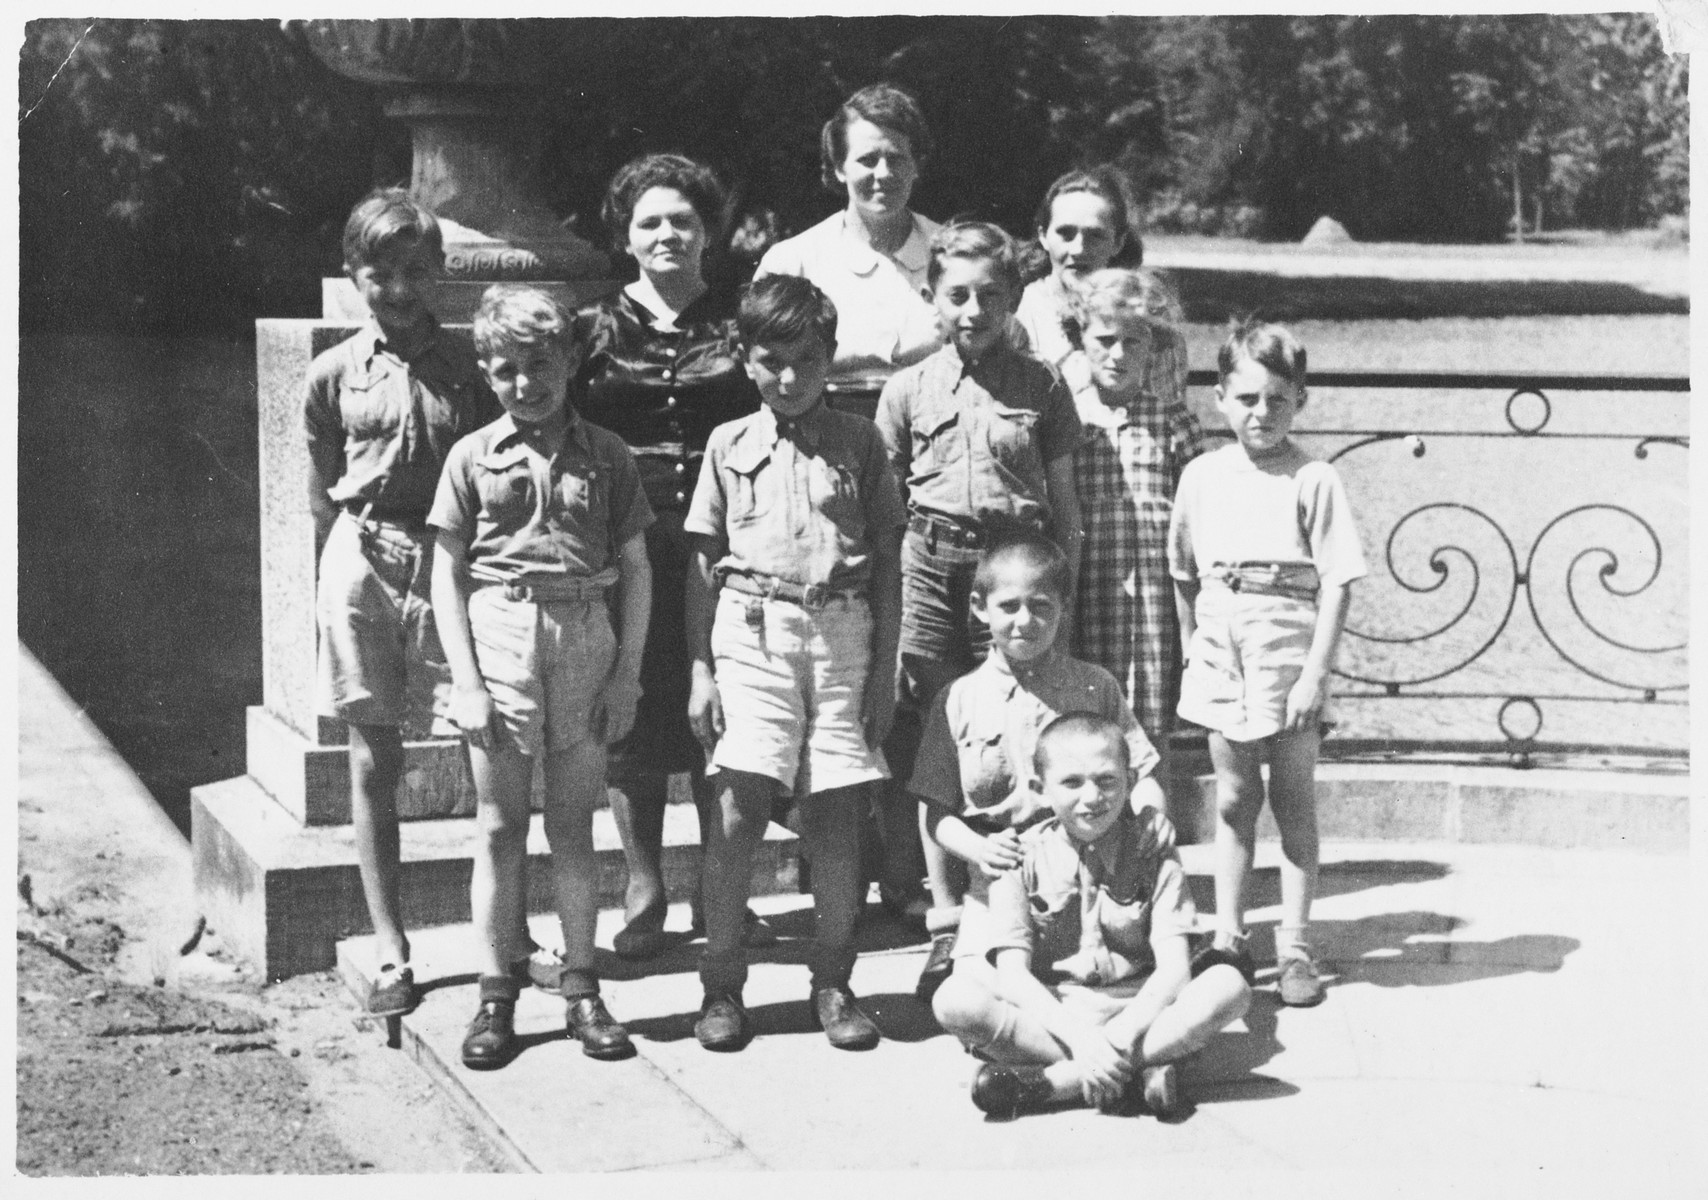 Group portrait of children at the Chateau de Beloeil children's home where Jacques and Robert Kucinski were hiding during the German occupation of Belgium.